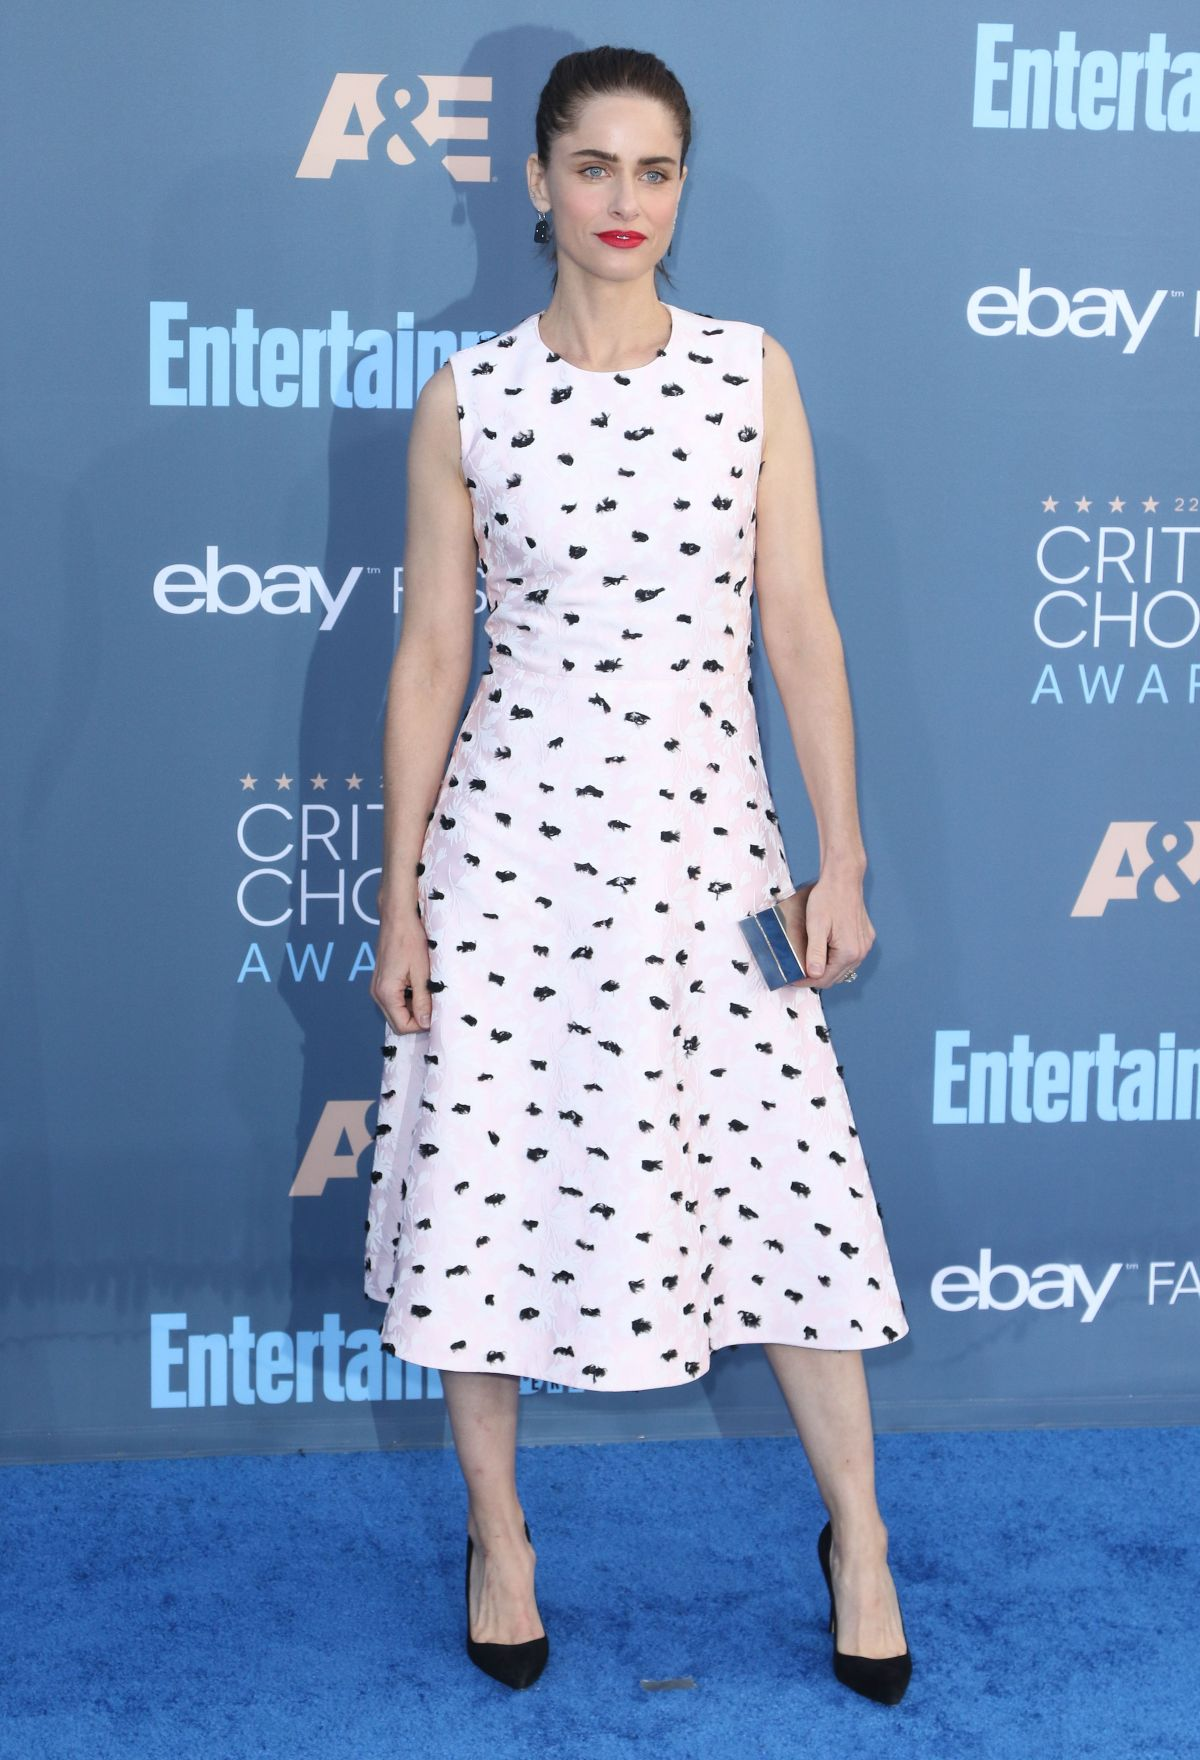 Amanda Peet At The 22nd Annual Critics' Choice Awards in Santa Monica   amanda-peet-at-the-22nd-annual-critics-choice-awards-in-santa-monica-_4